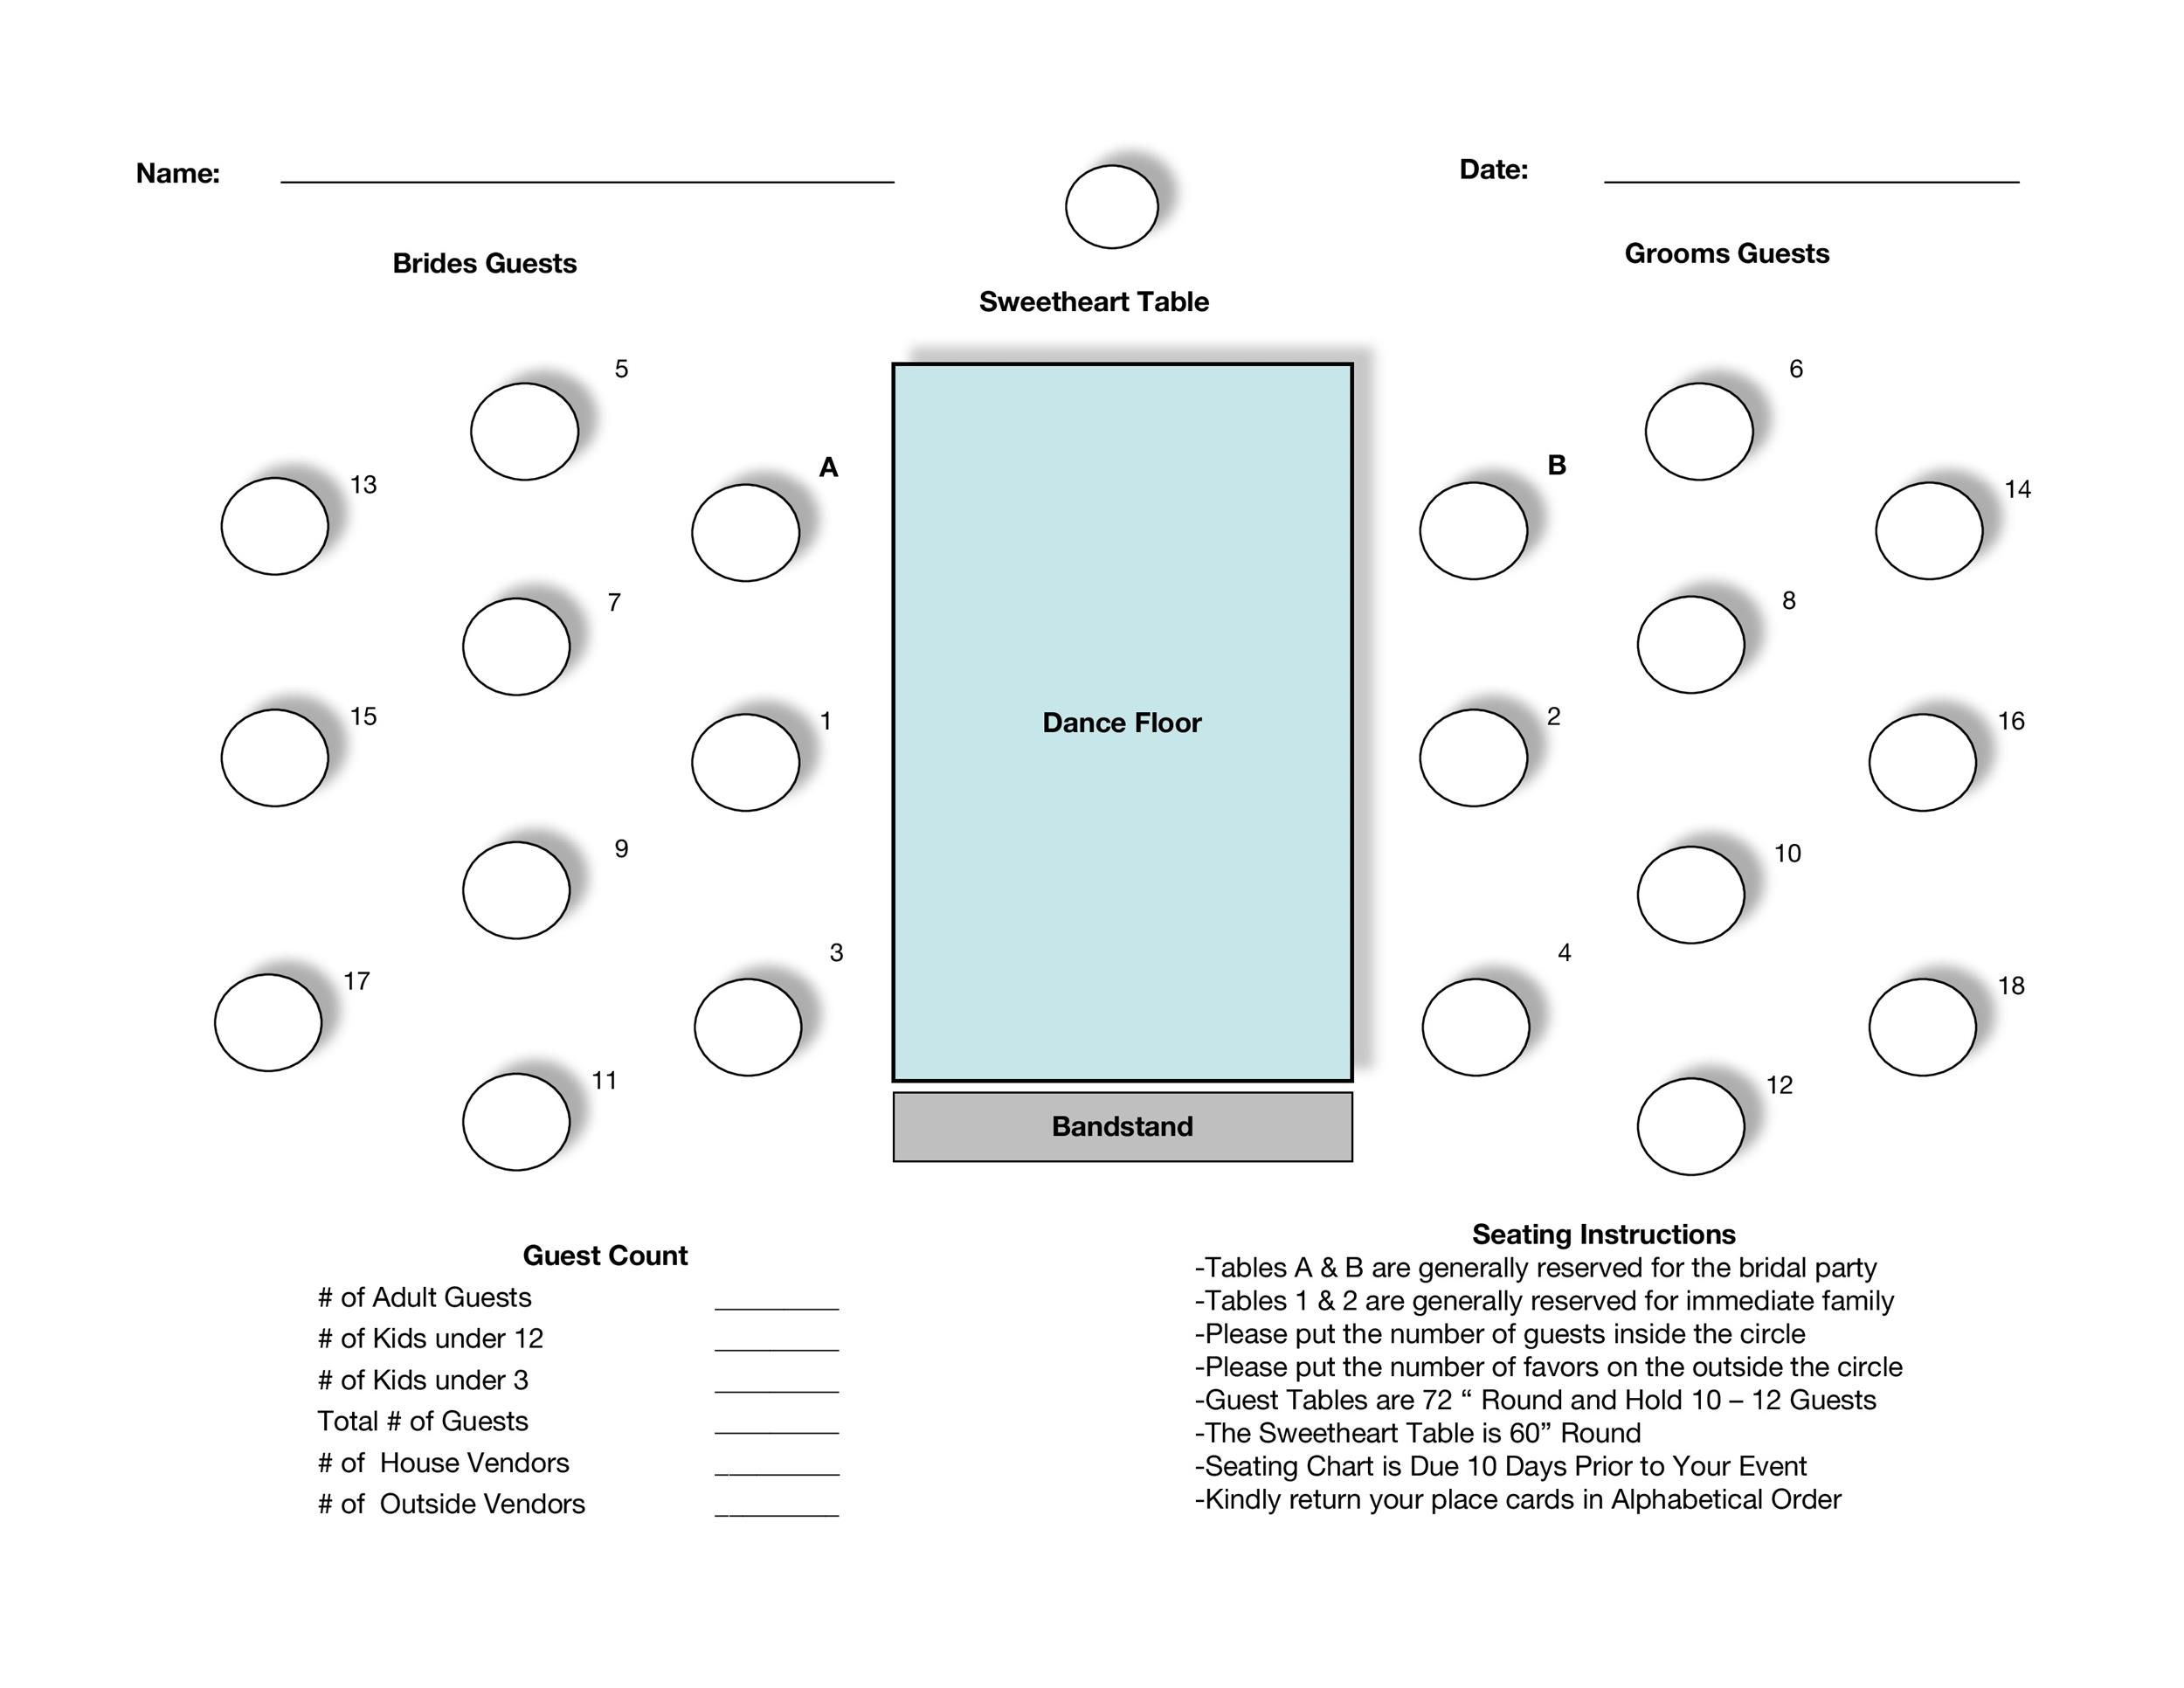 005 Fearsome Seating Chart Template Word Image  Wedding Microsoft Free 10 Per TableFull